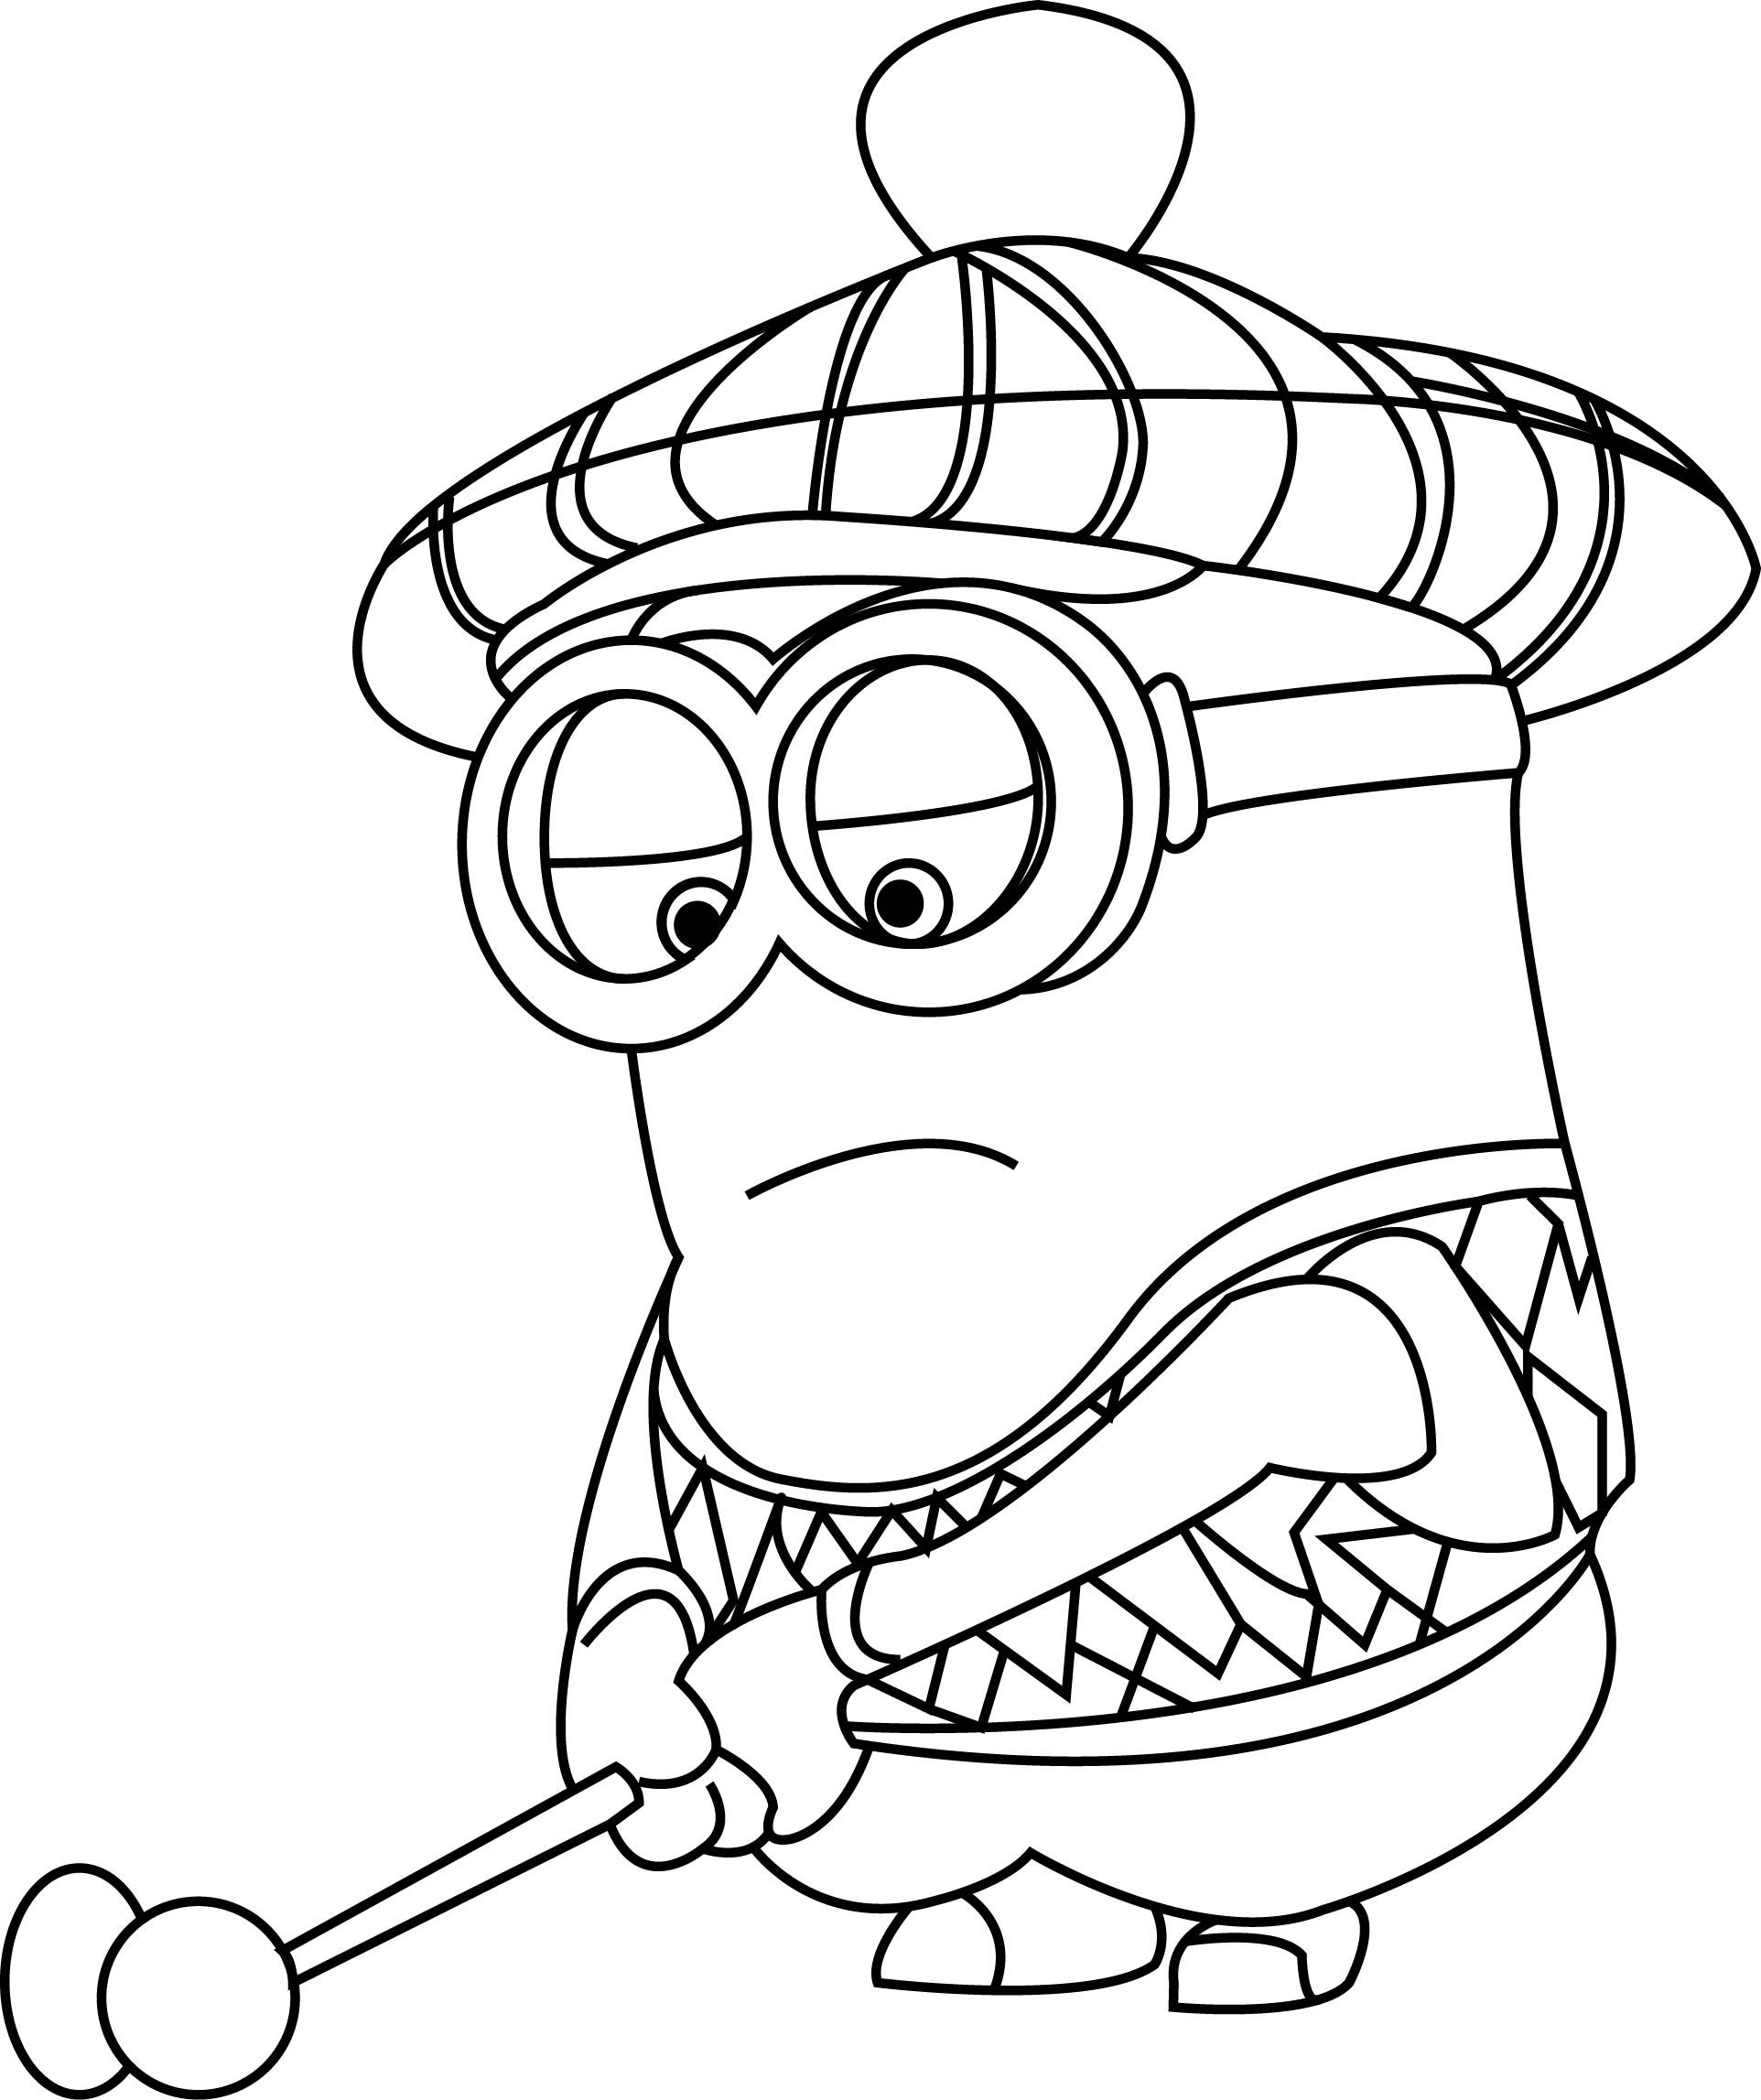 Despicable Me Golfer Minion Minion Coloring Pages